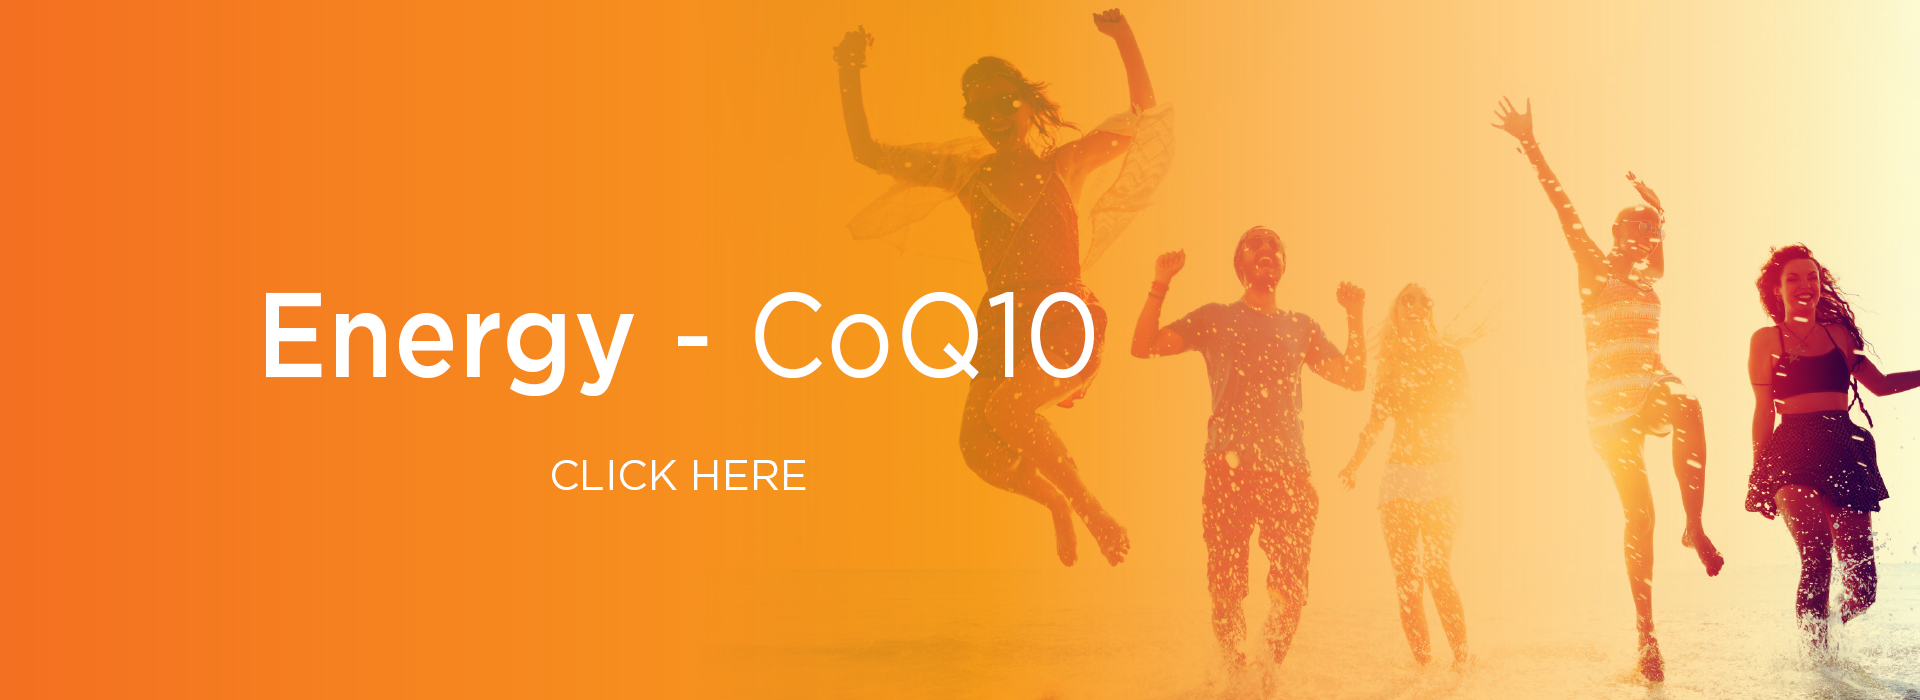 New Image International: Energy CoQ10